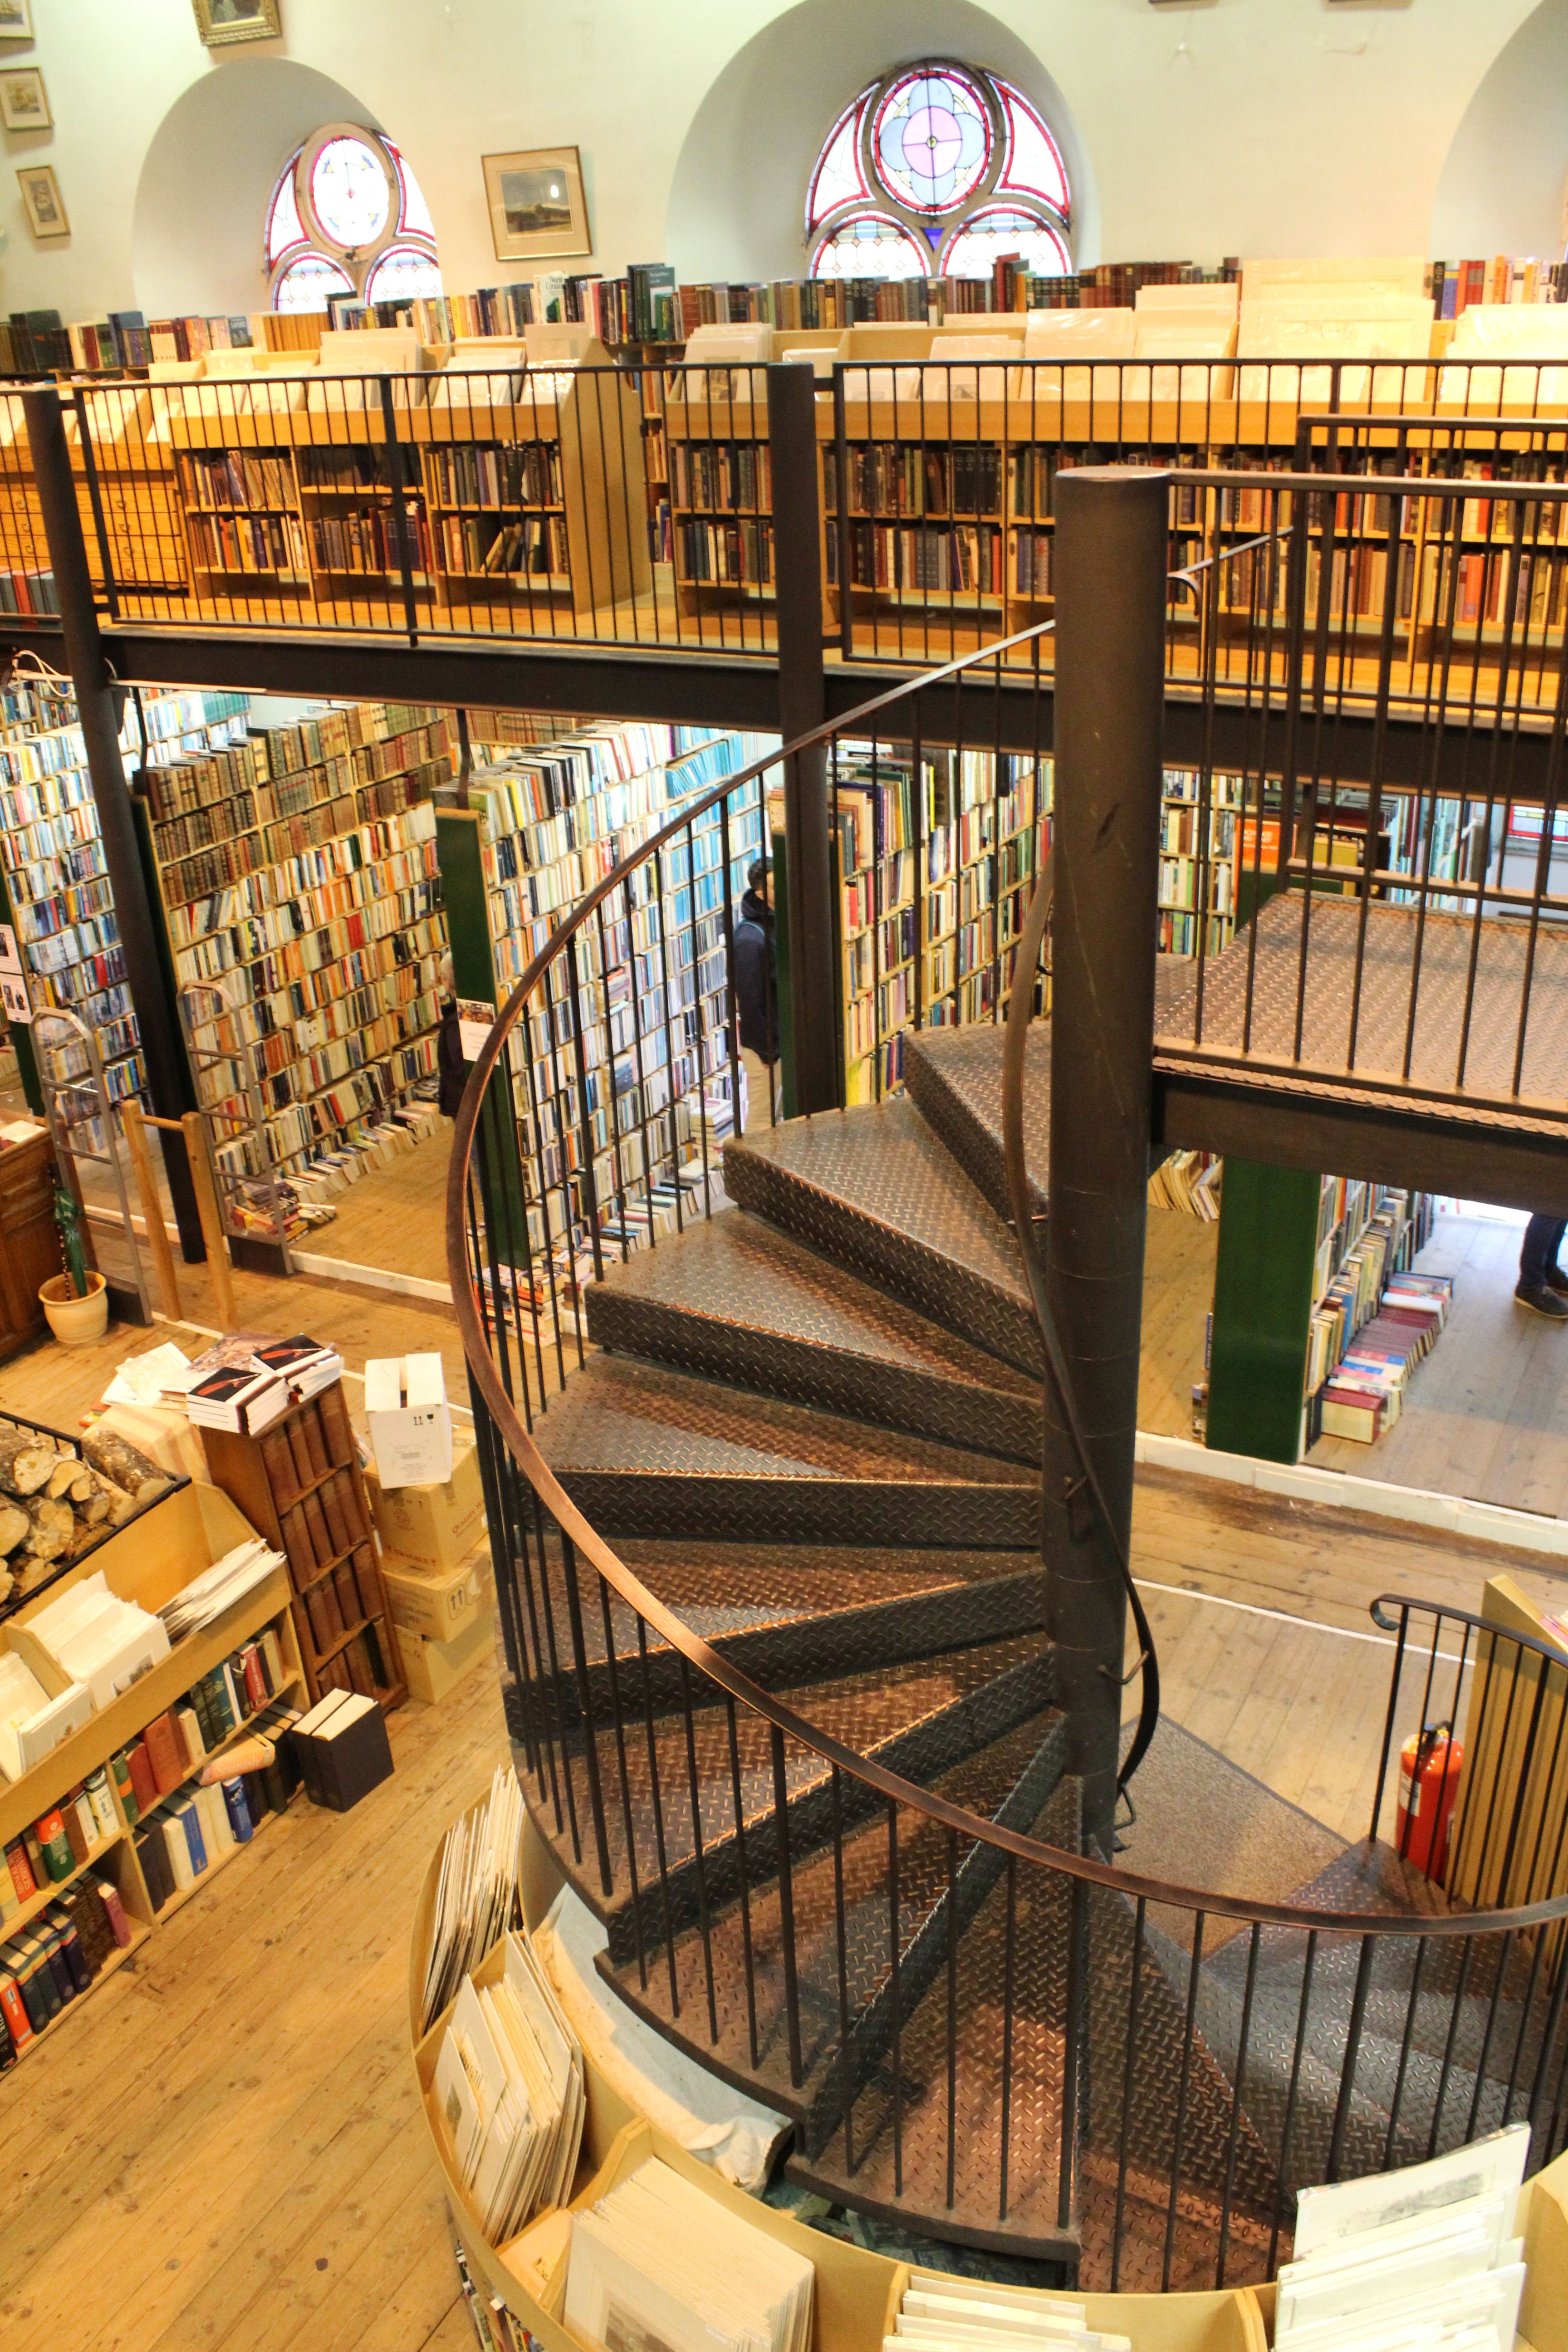 Leakey S Book Shop The Harry Potter S Library In Hogwarts Inverness Scotland Visit Scotland Places In Scotland